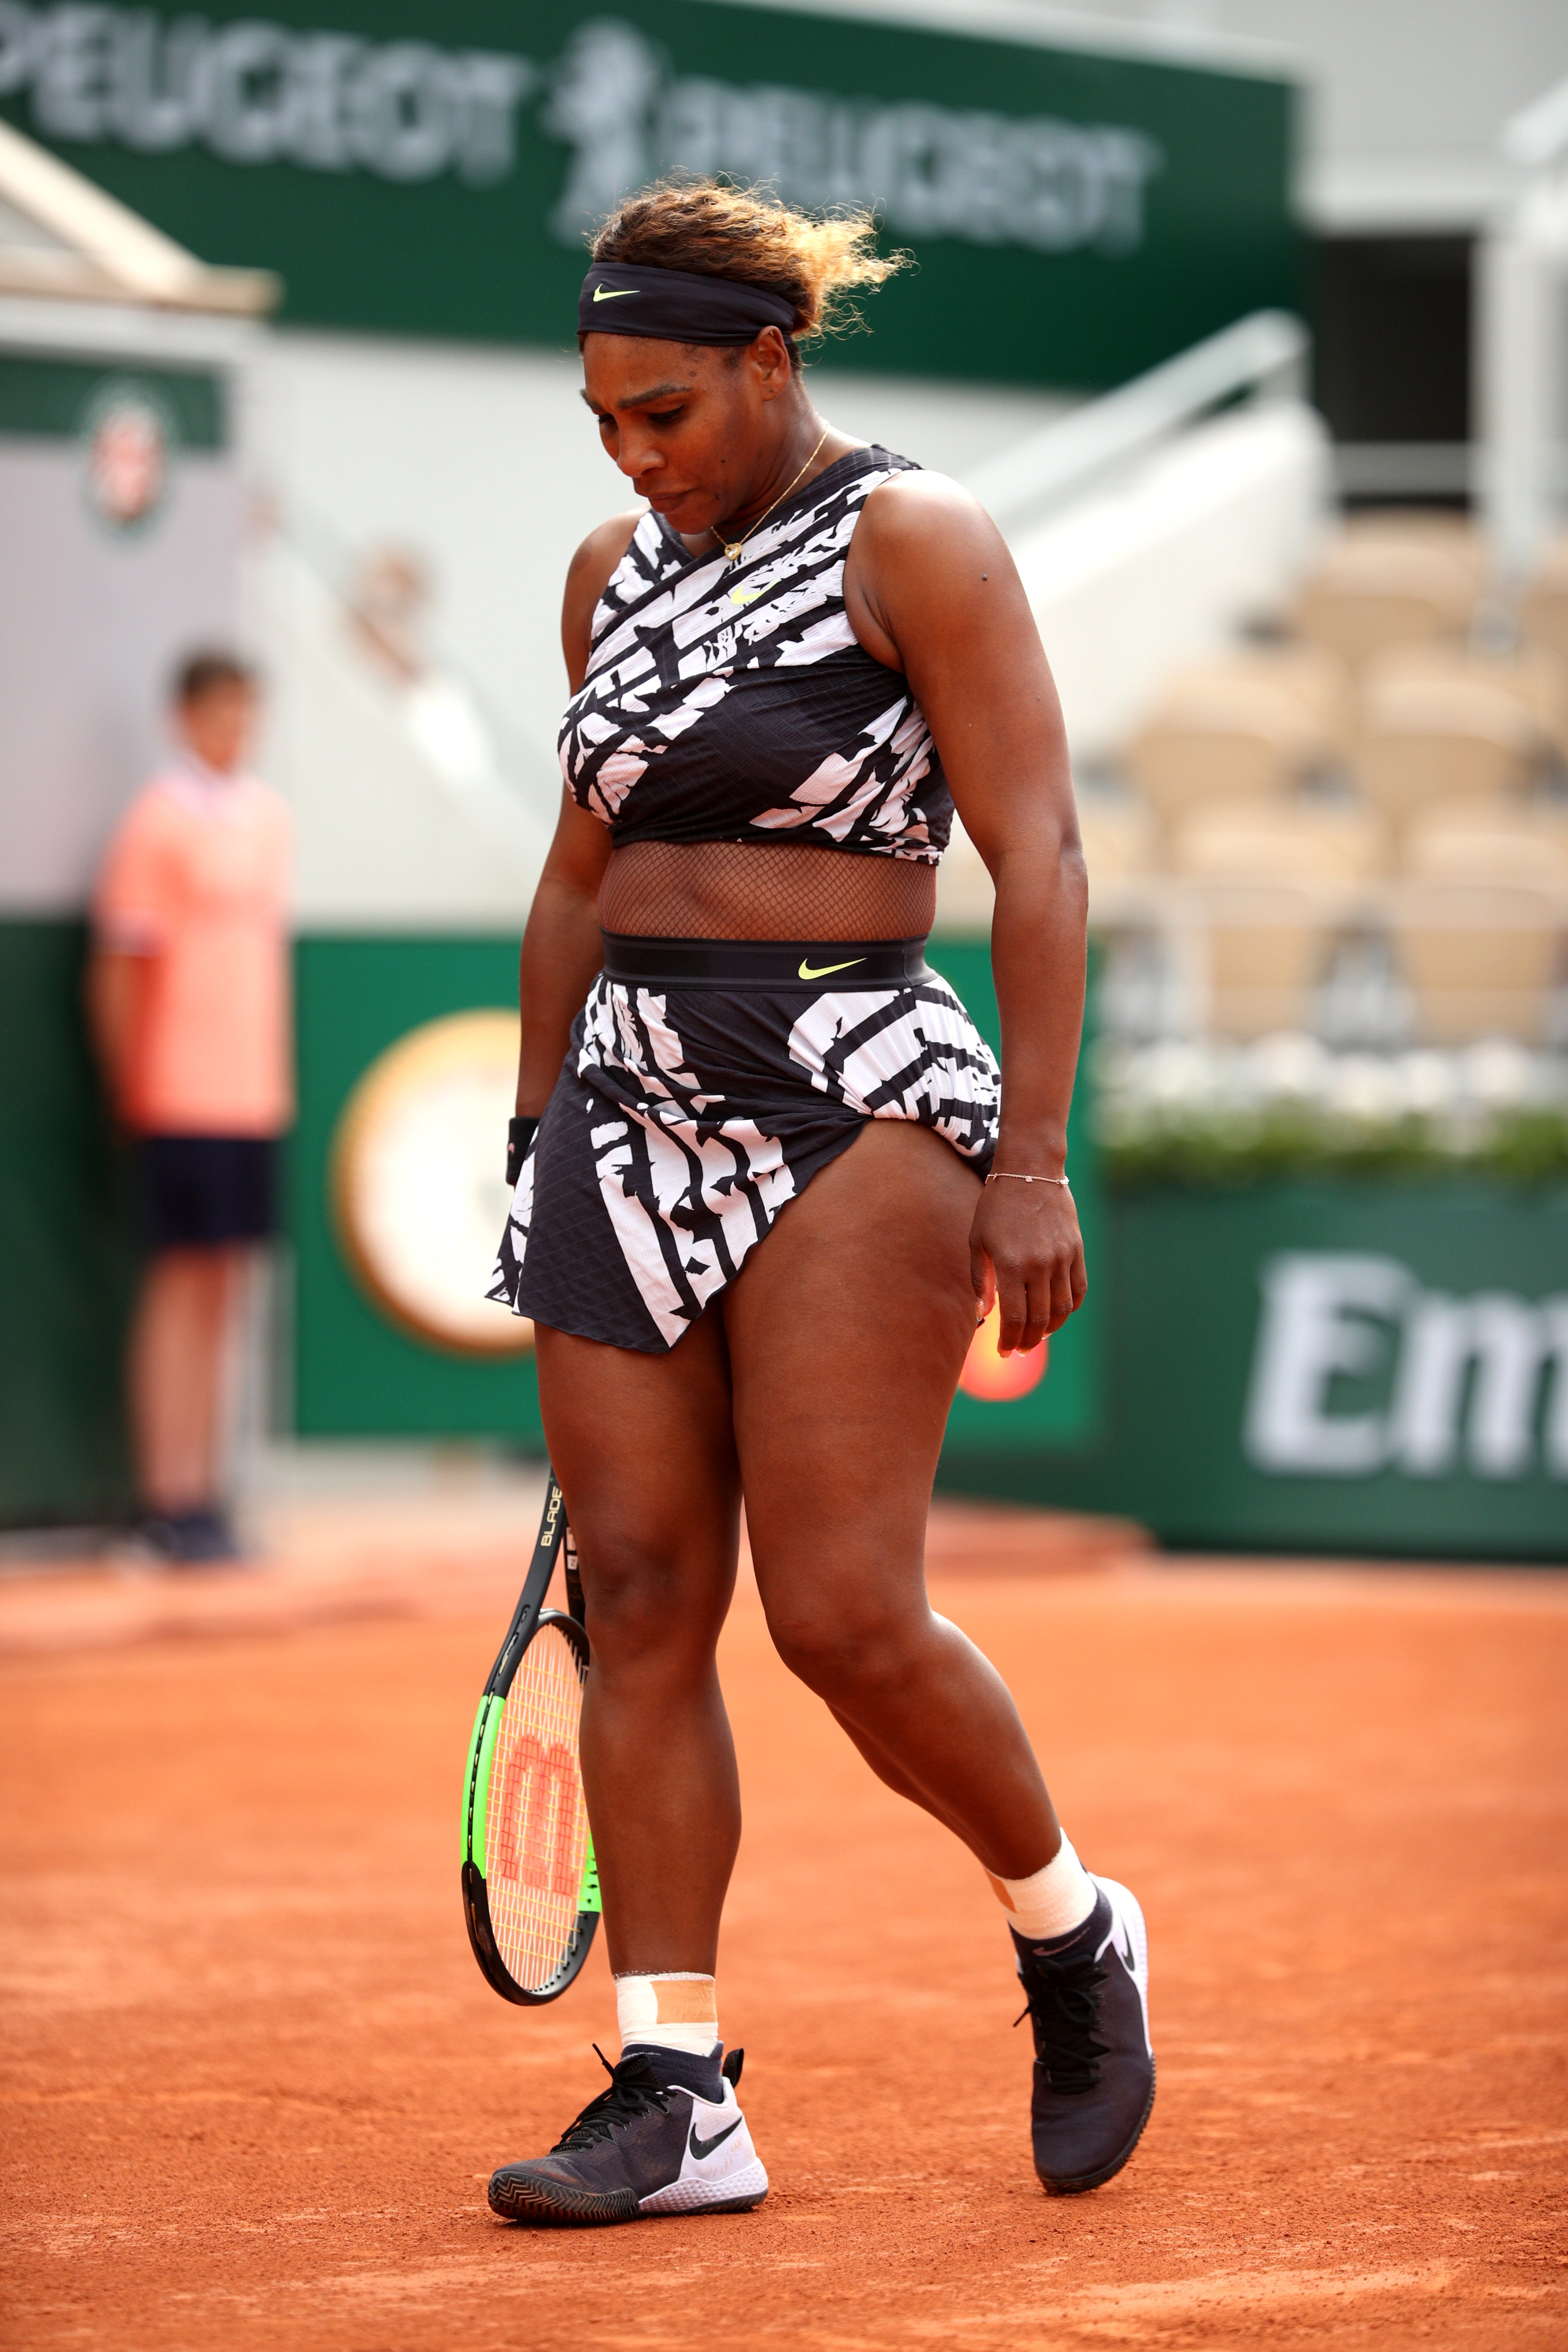 Serena Williams at the 2019 French Open at Roland Garros on May 27, 2019 in Paris, France. |Photo: Getty Images